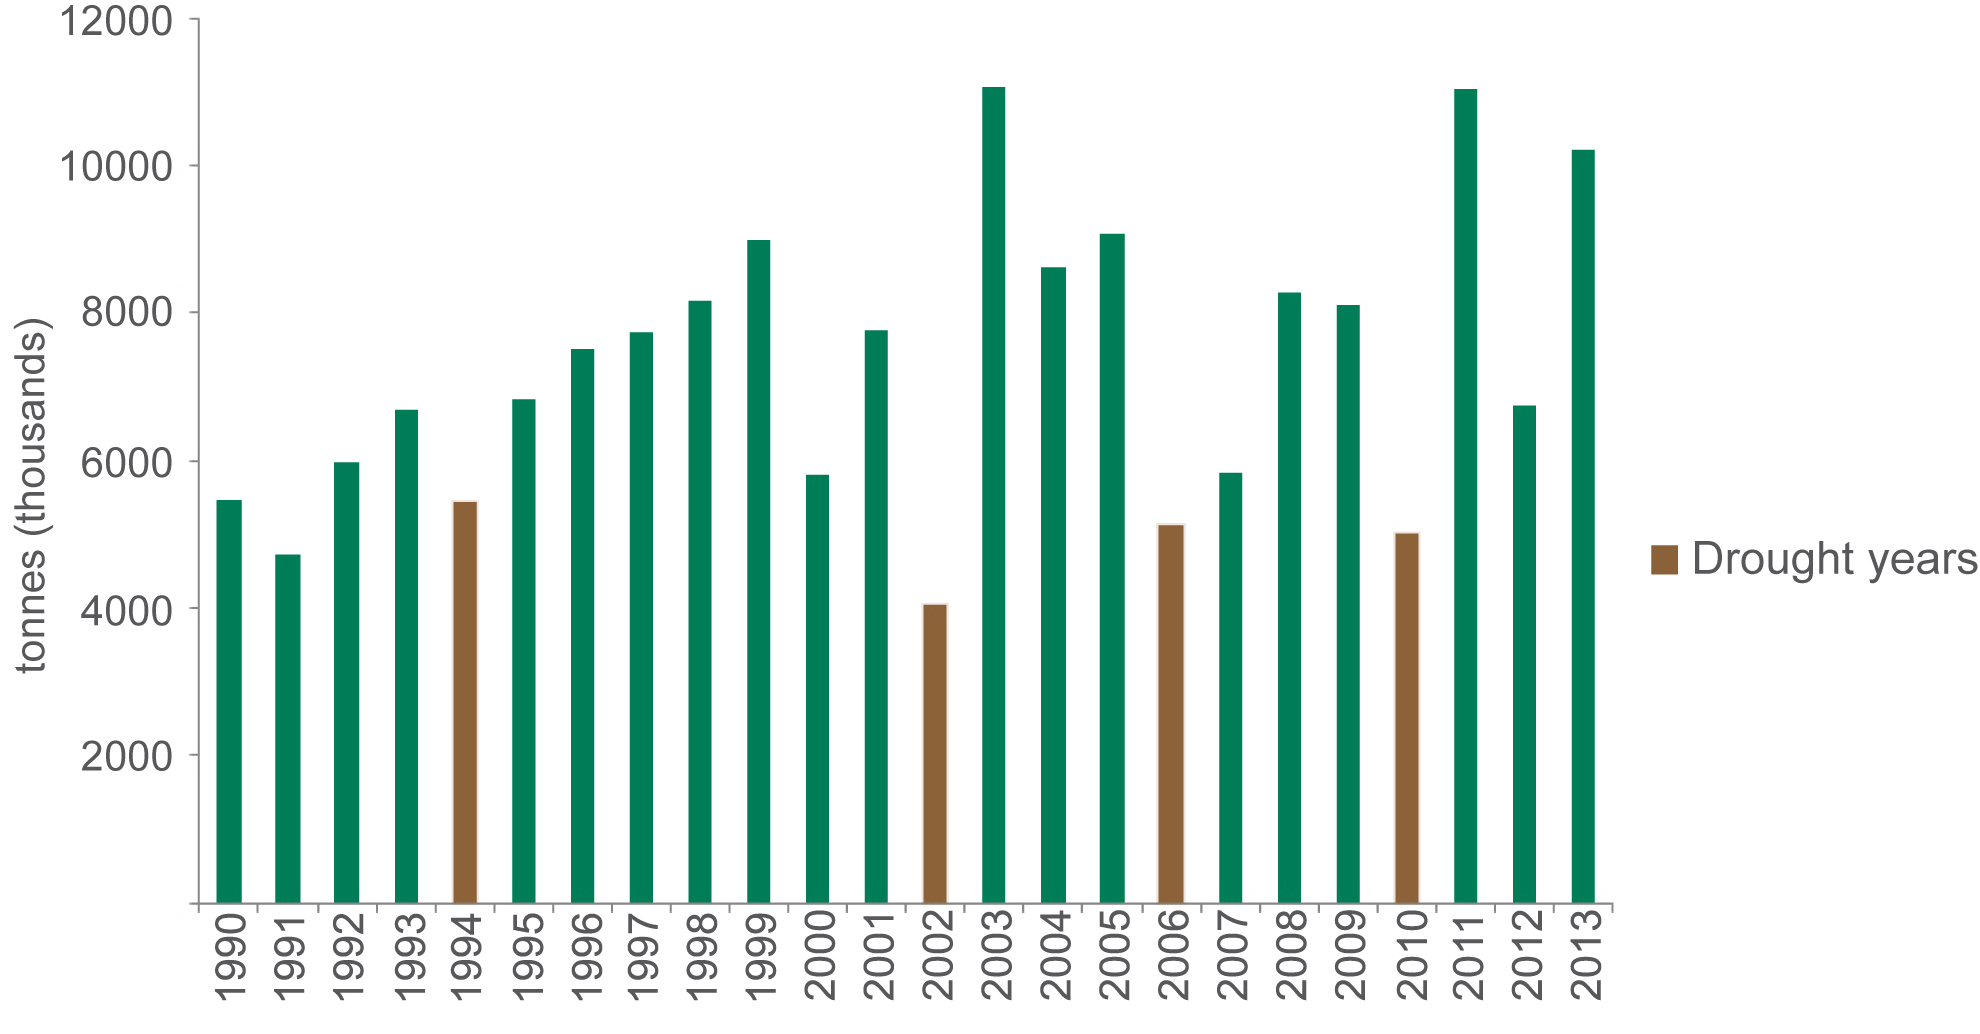 WA wheat production 1990 to 2013